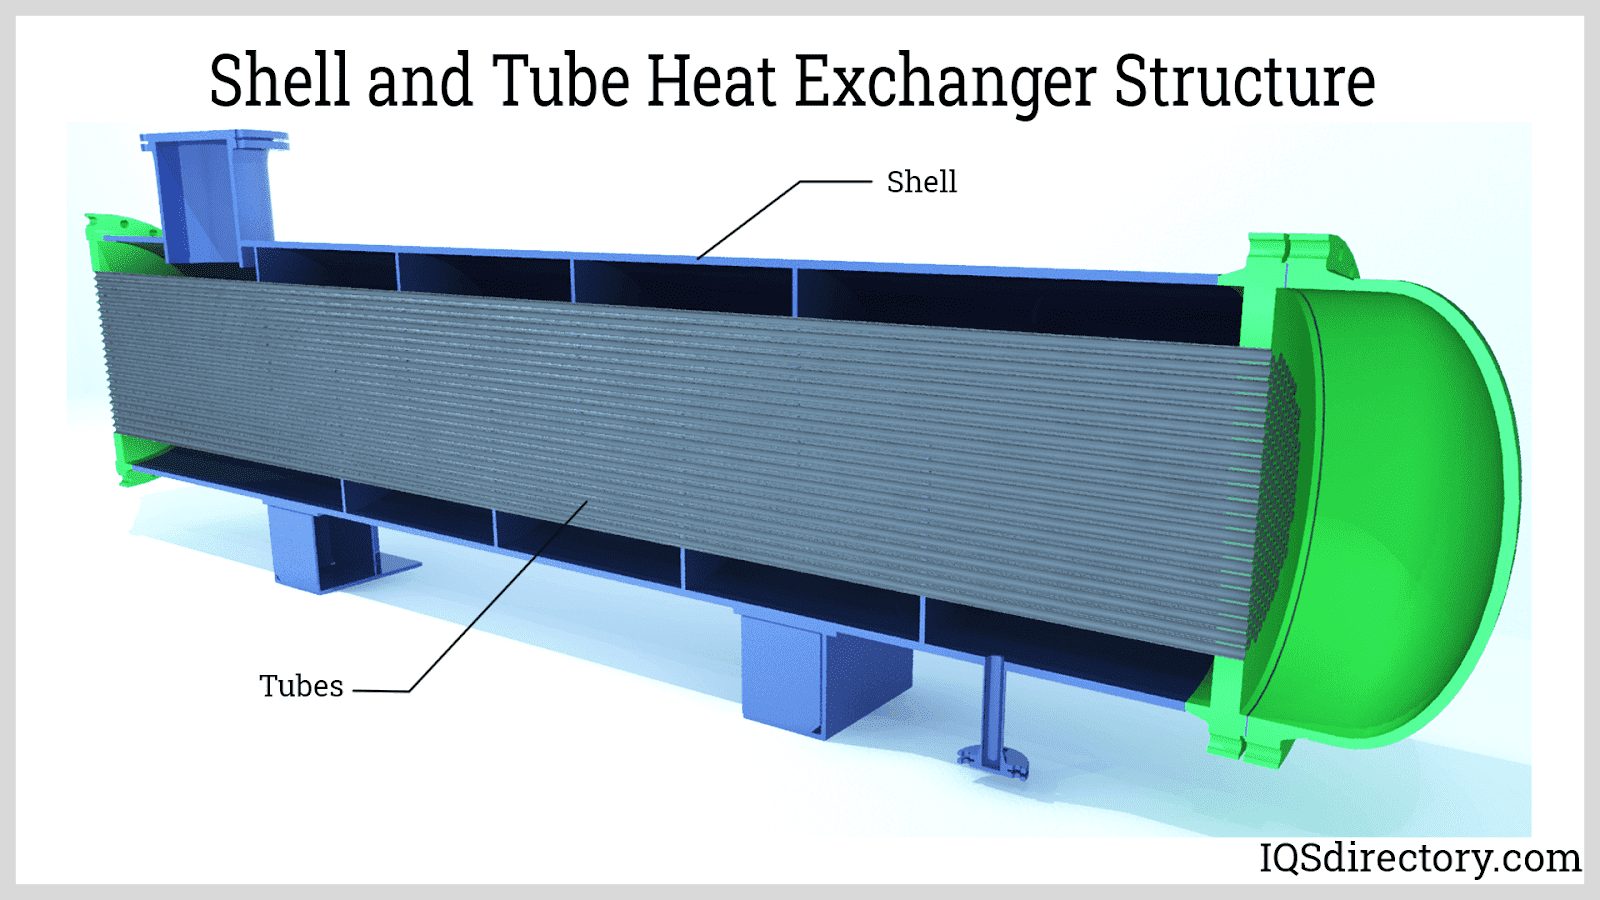 Shell and Tube Heat Exchanger Structure